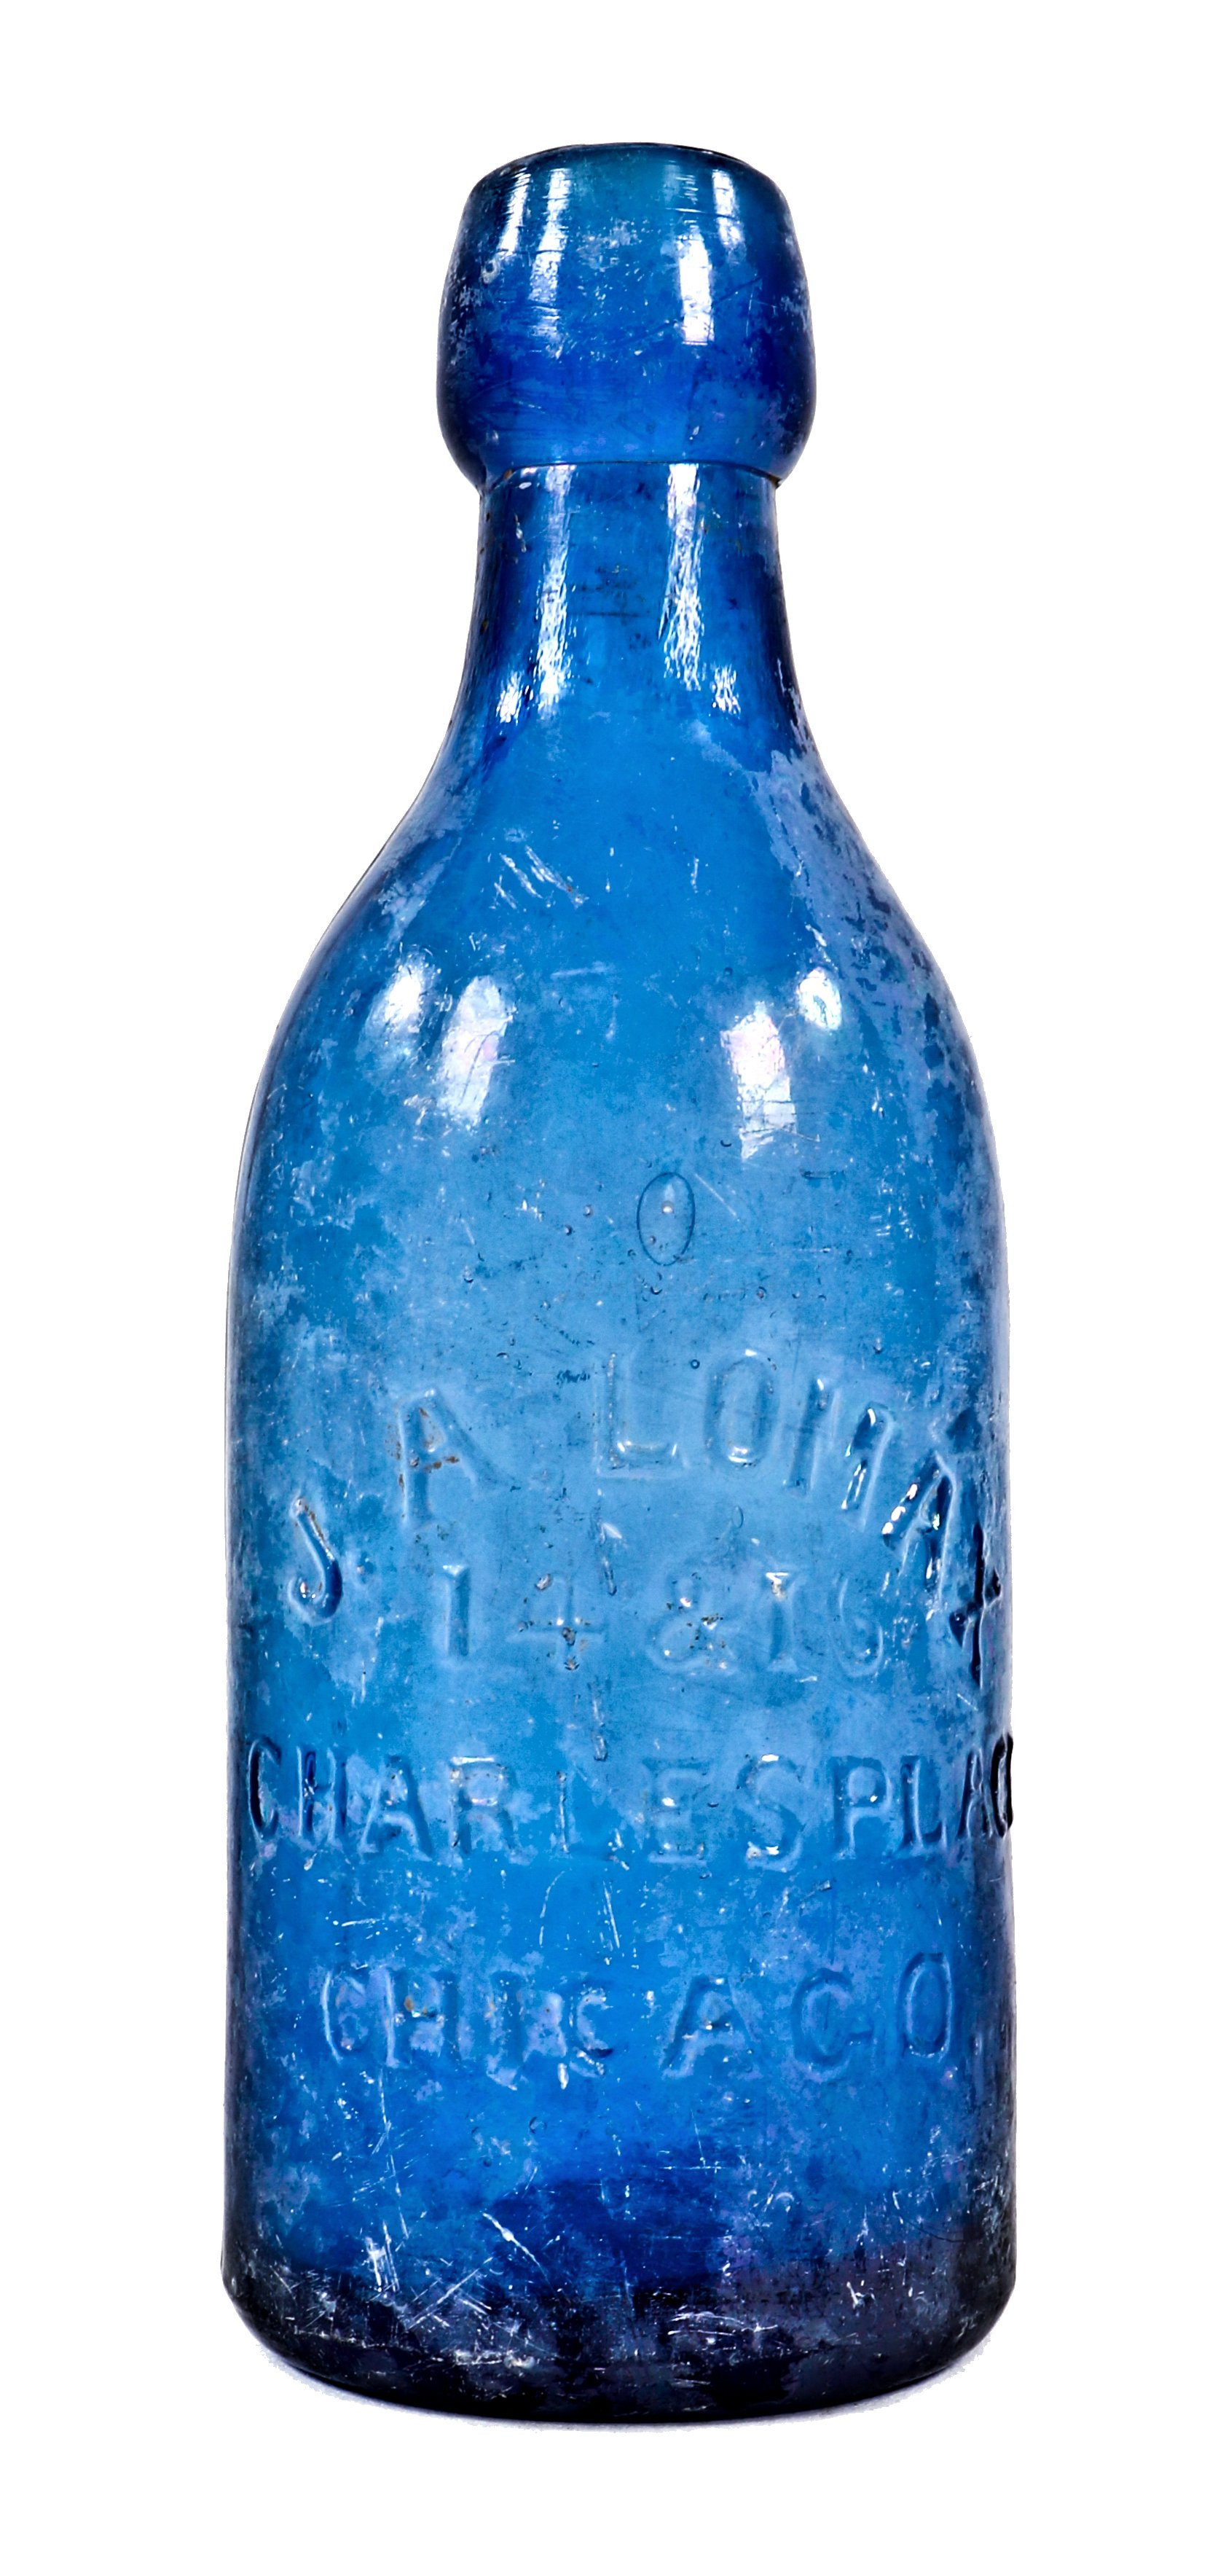 blue vase book exchange of rare 1850s teal colored ainsworth and lomax glass bottle recently for most of which john lomax had purchased the consolidated chicago was badly damaged by a fire in 1891 after presumably recovering lomax continued as